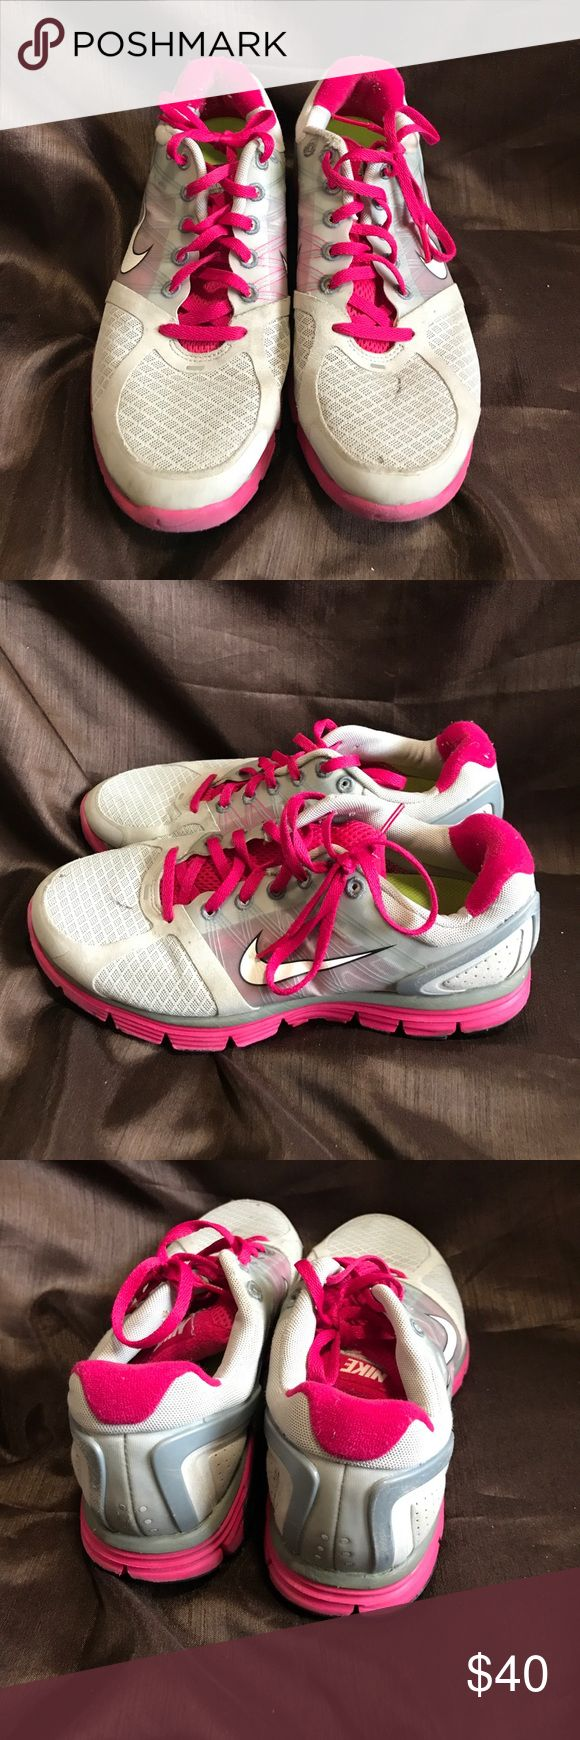 Nike Sneakers Pink and gray Nike Lunarglide 2 Running shoes. Place an offer!! Excellent condition!! Nike Shoes Athletic Shoes